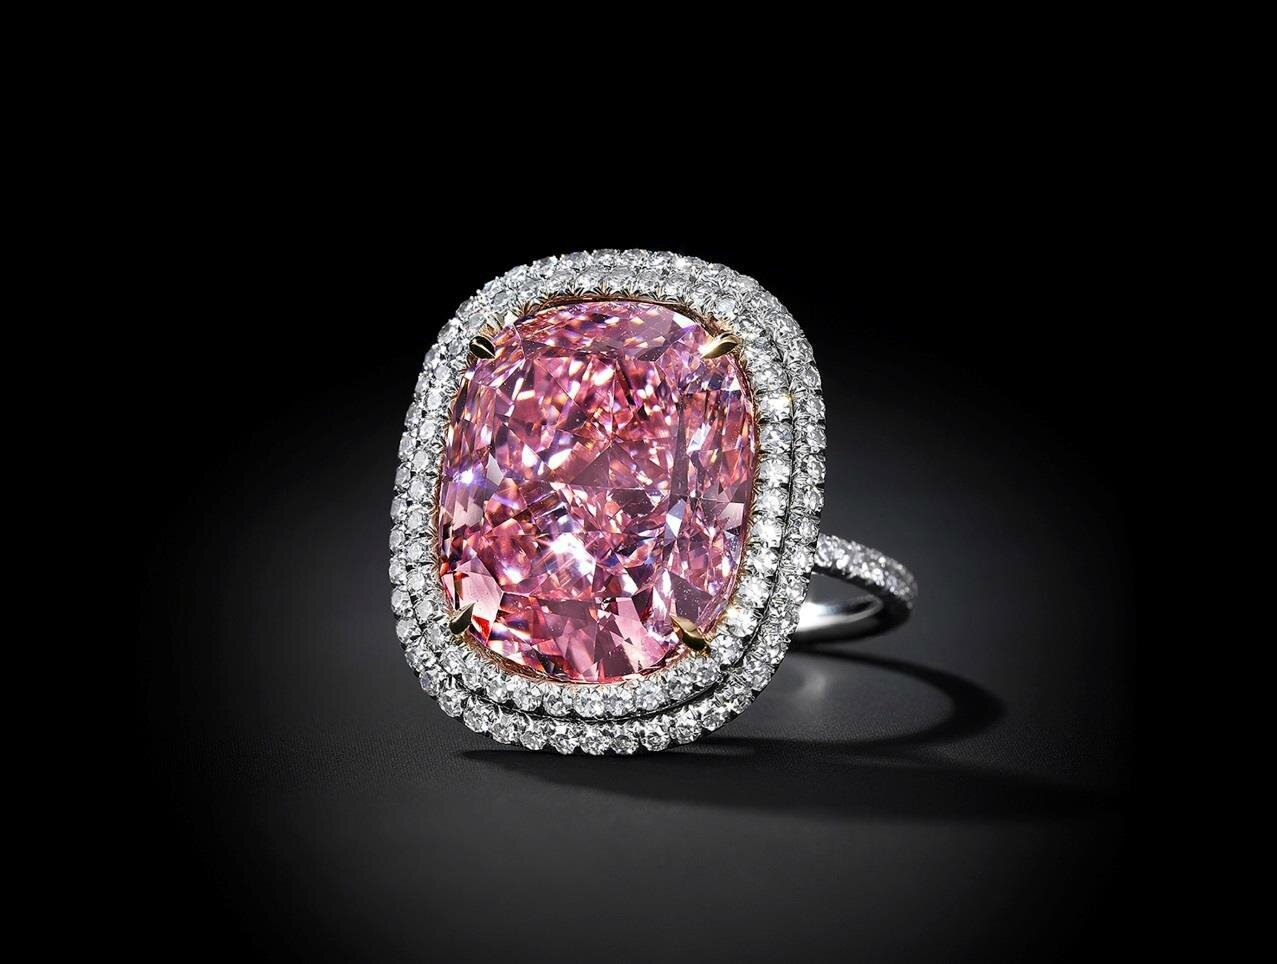 Christie's to offer the largest cushion-shaped fancy vivid pink diamond ever to come to auction